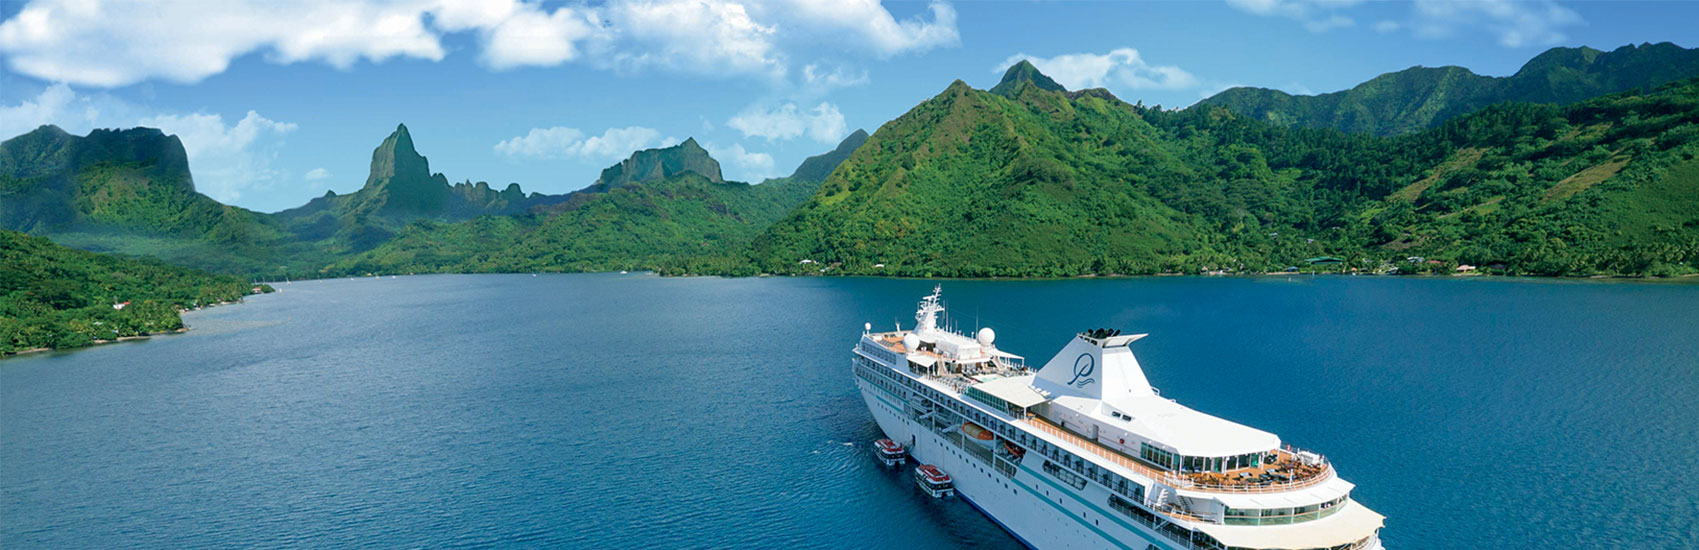 Discover Small Ship Luxury with Paul Gauguin Cruises 0